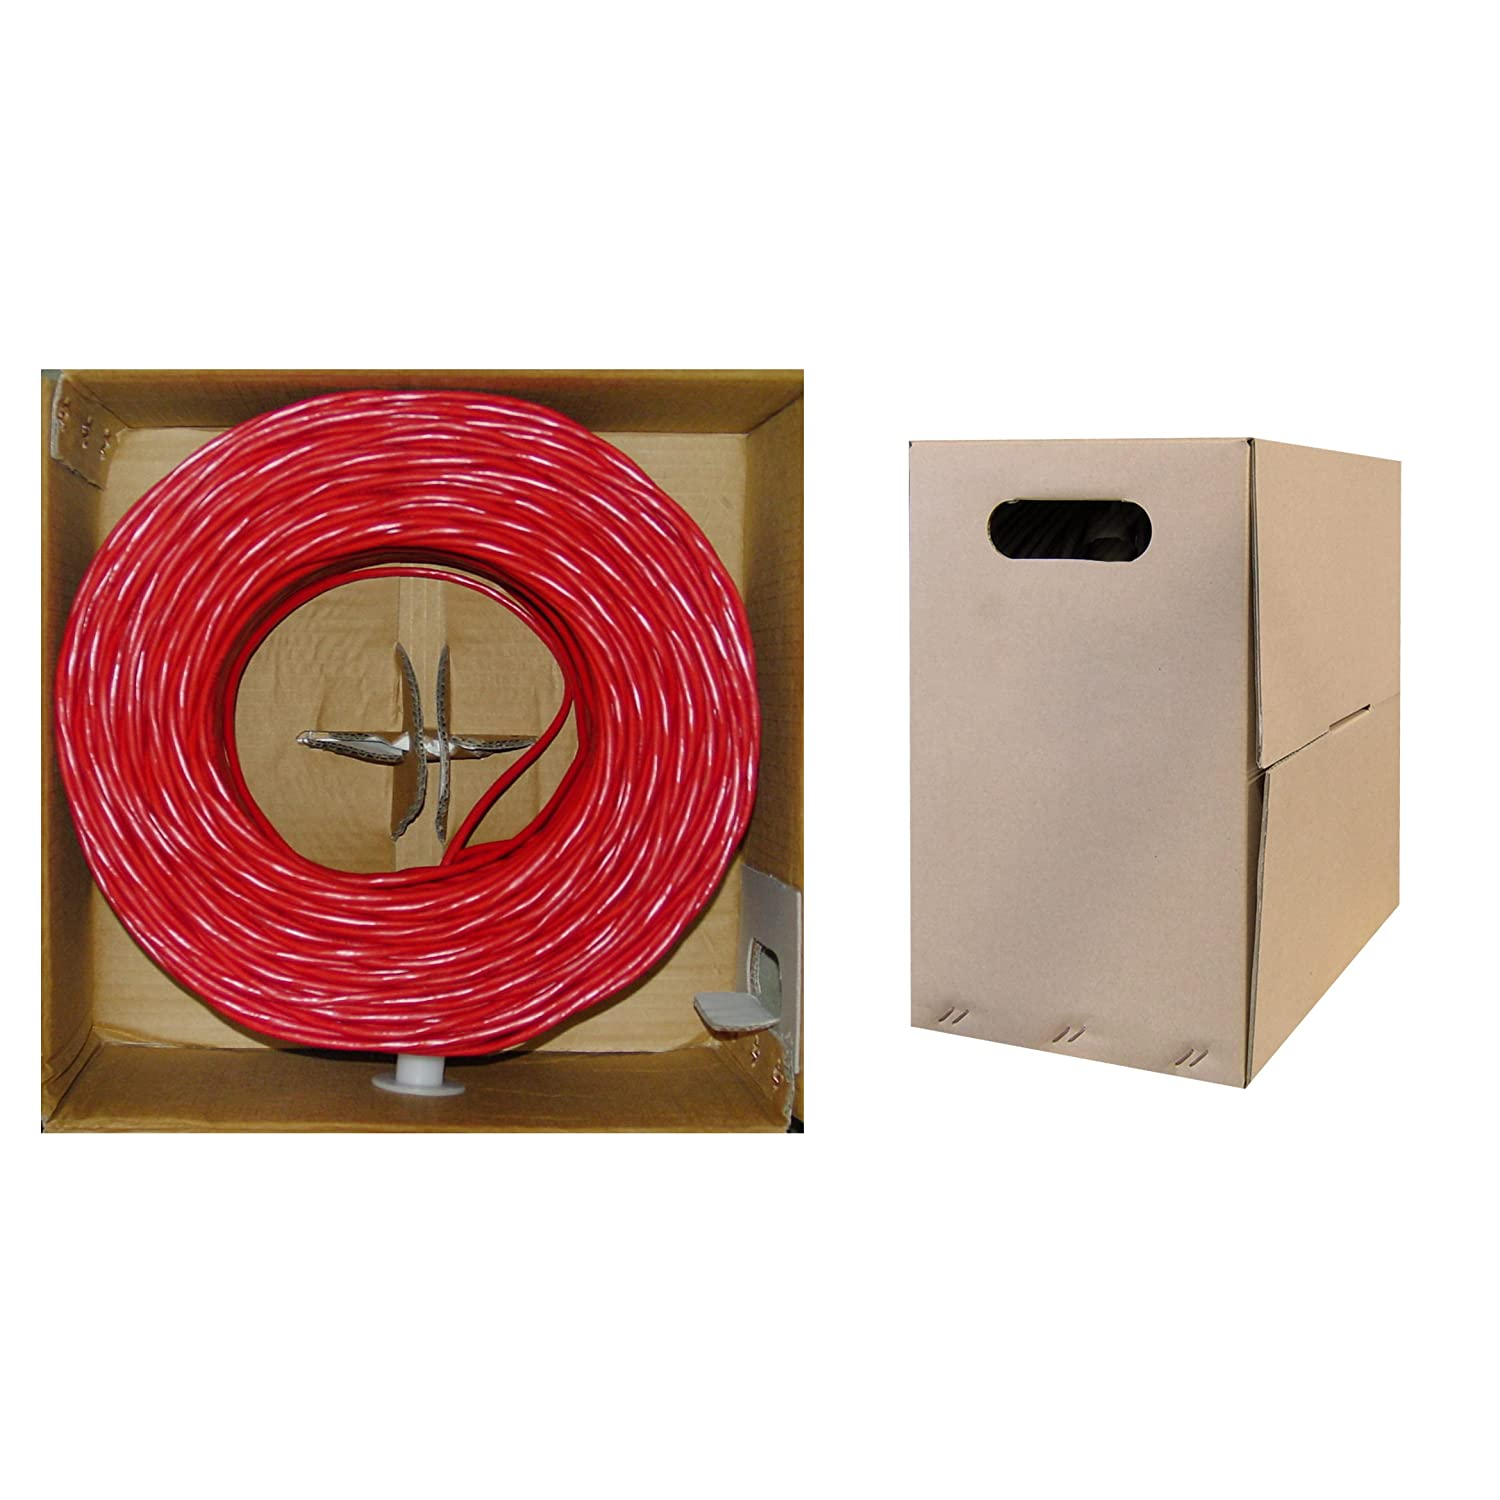 CLASSYTEK Plenum Cat6 Bulk Cable UTP Unshielded Twisted Pair Red 23 AWG Solid CMP Pullbox 1000 Foot